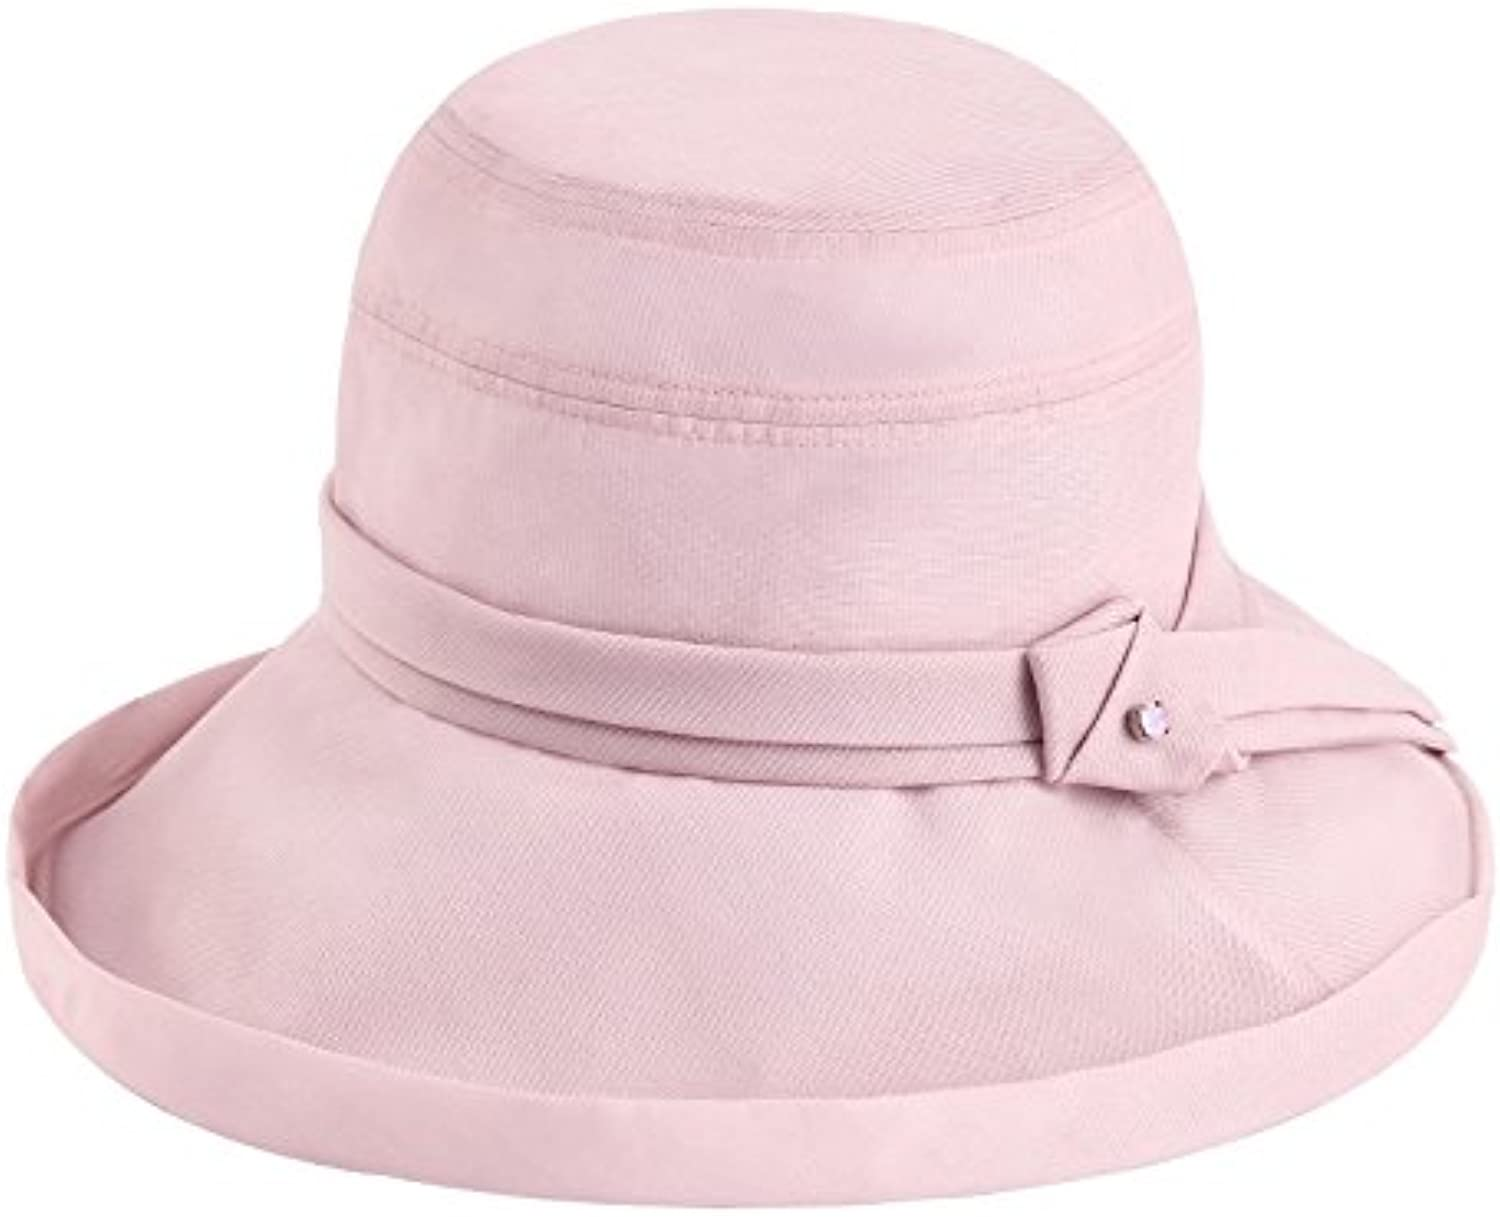 YMFIE Onorevoli Sun Hat Estate Sunscreen Hat Cappello da Hat Sole Leisure  Fashion Beach Hat da aa1a2b5c1f9f